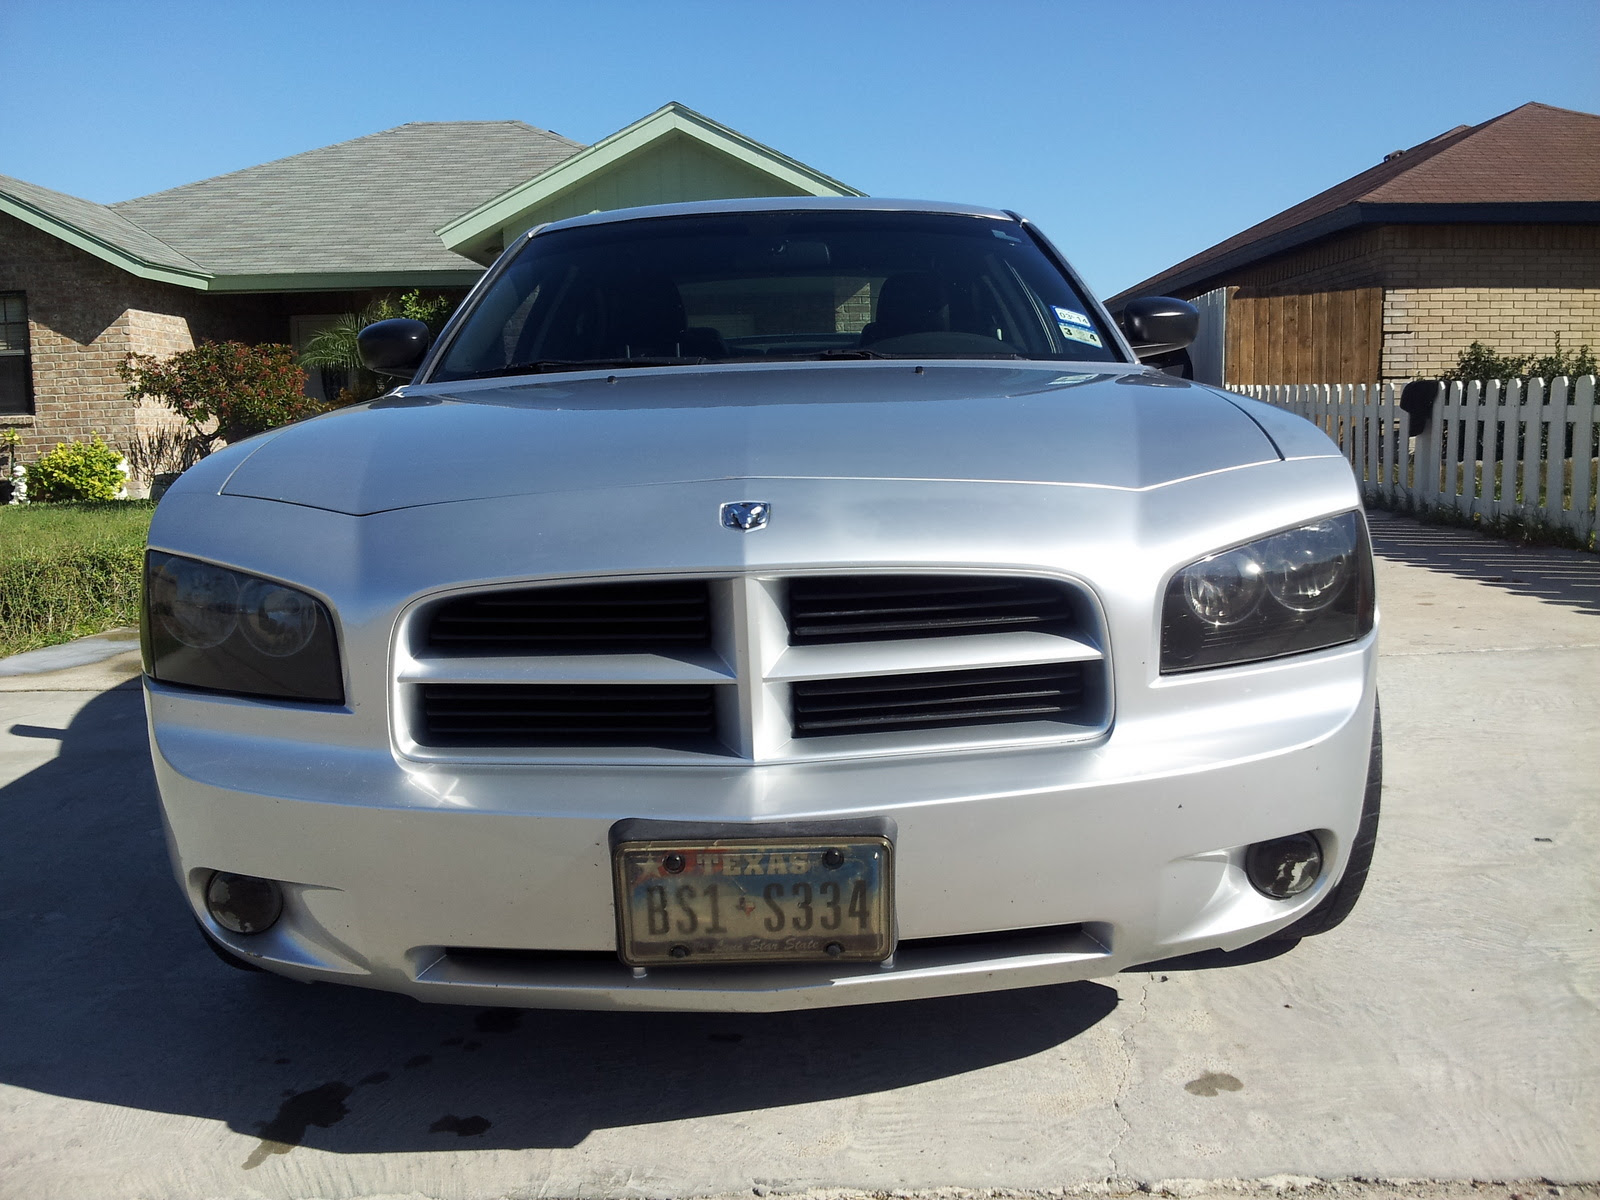 Used Dodge Charger For Sale - CarGurus